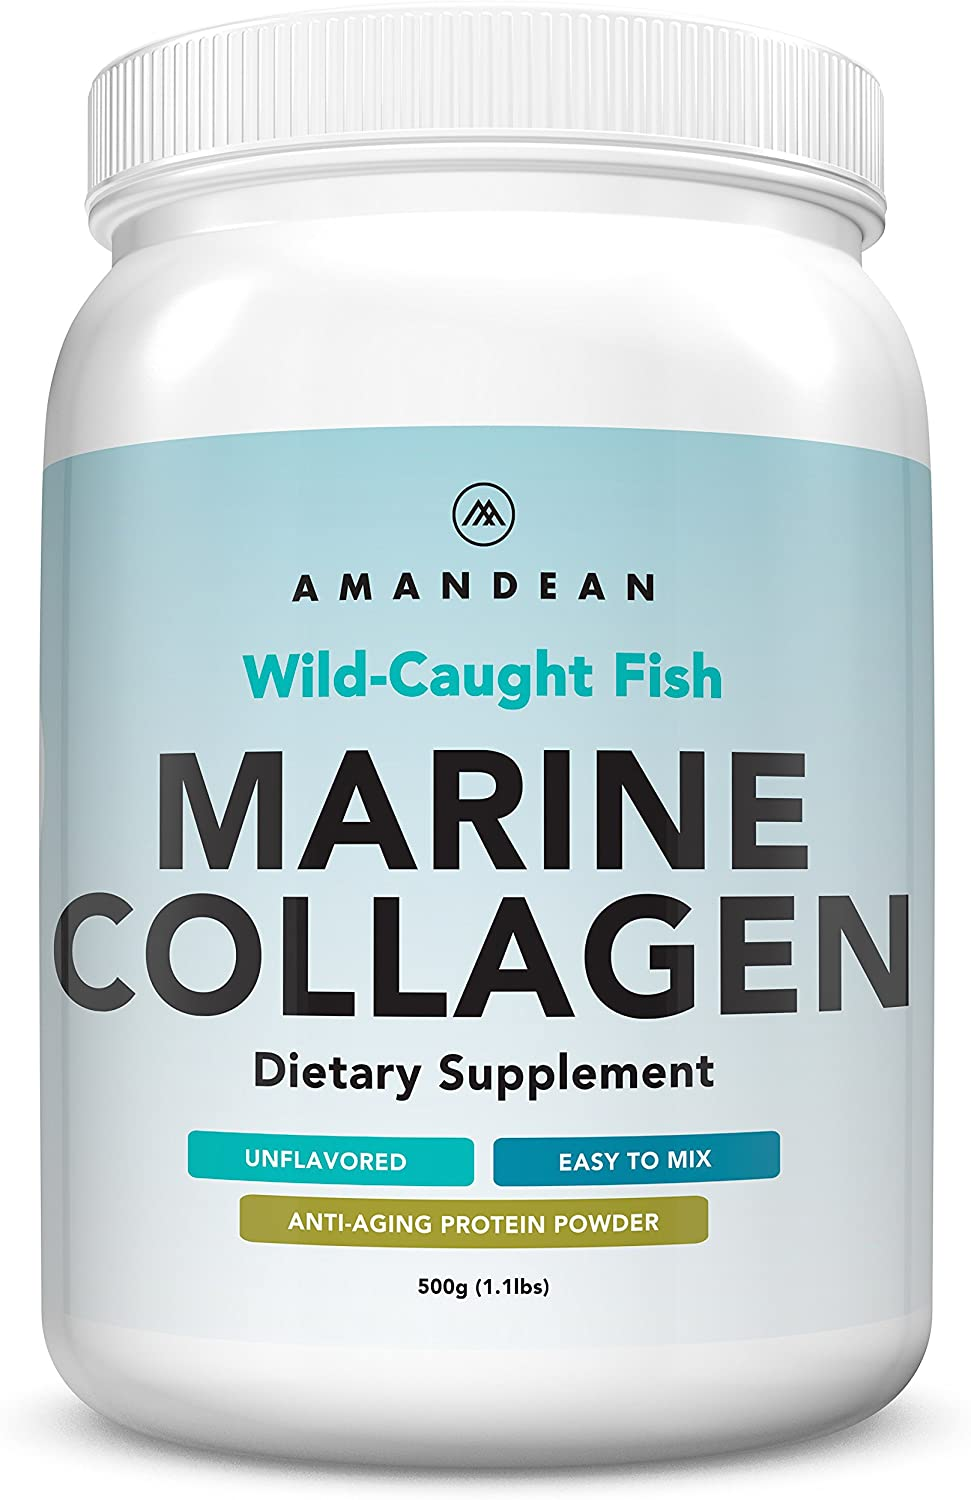 AMANDEAN Paleo Anti-Aging Marine Collagen Protein Supplement